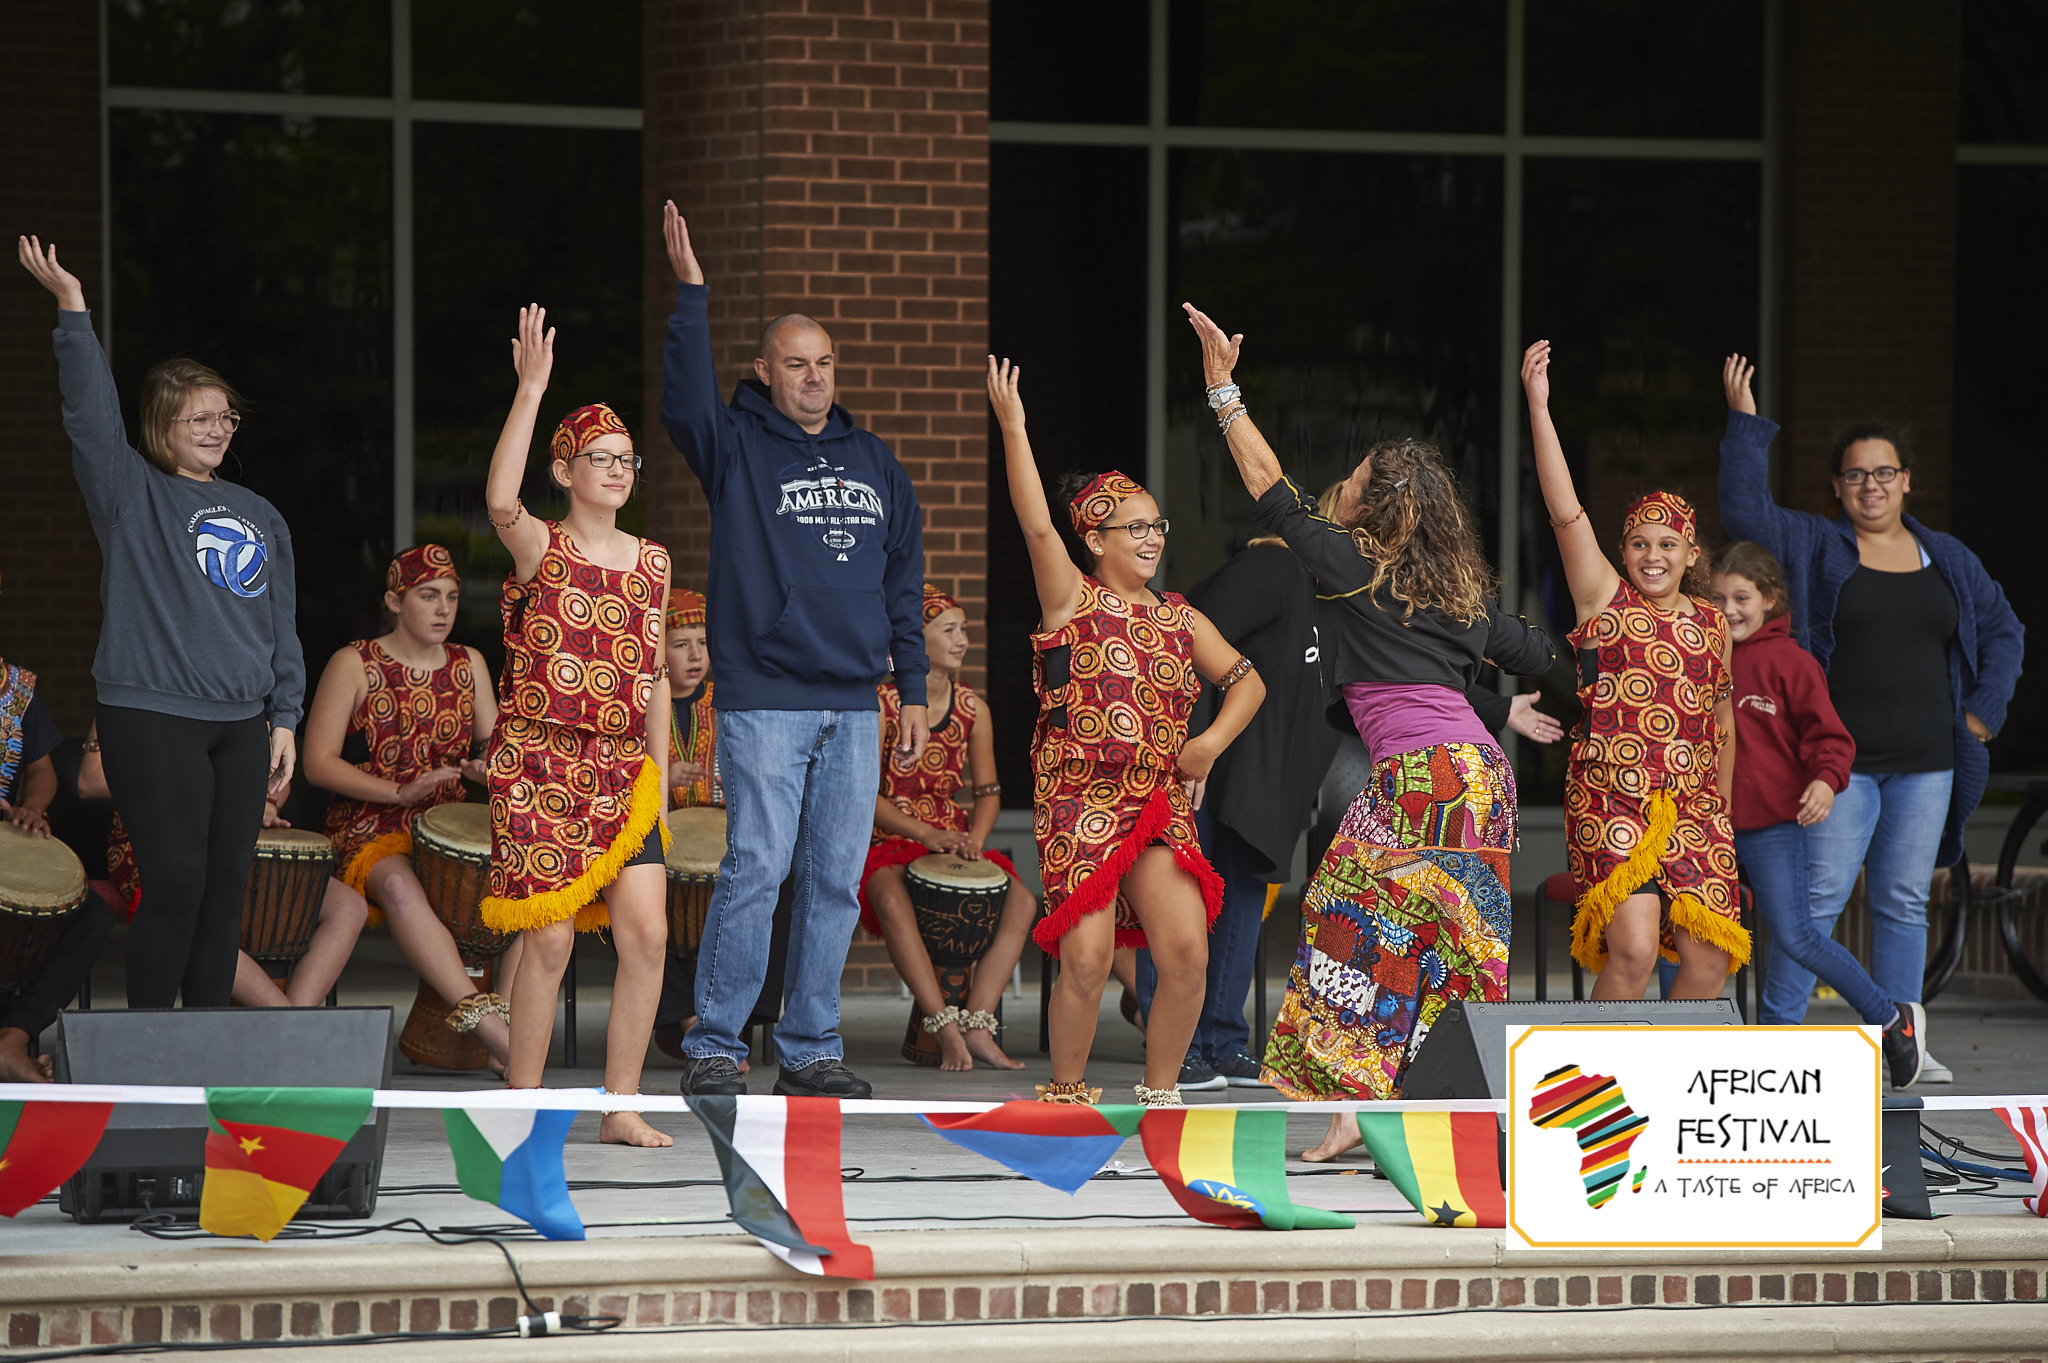 Interactive African Dance with event Attendees